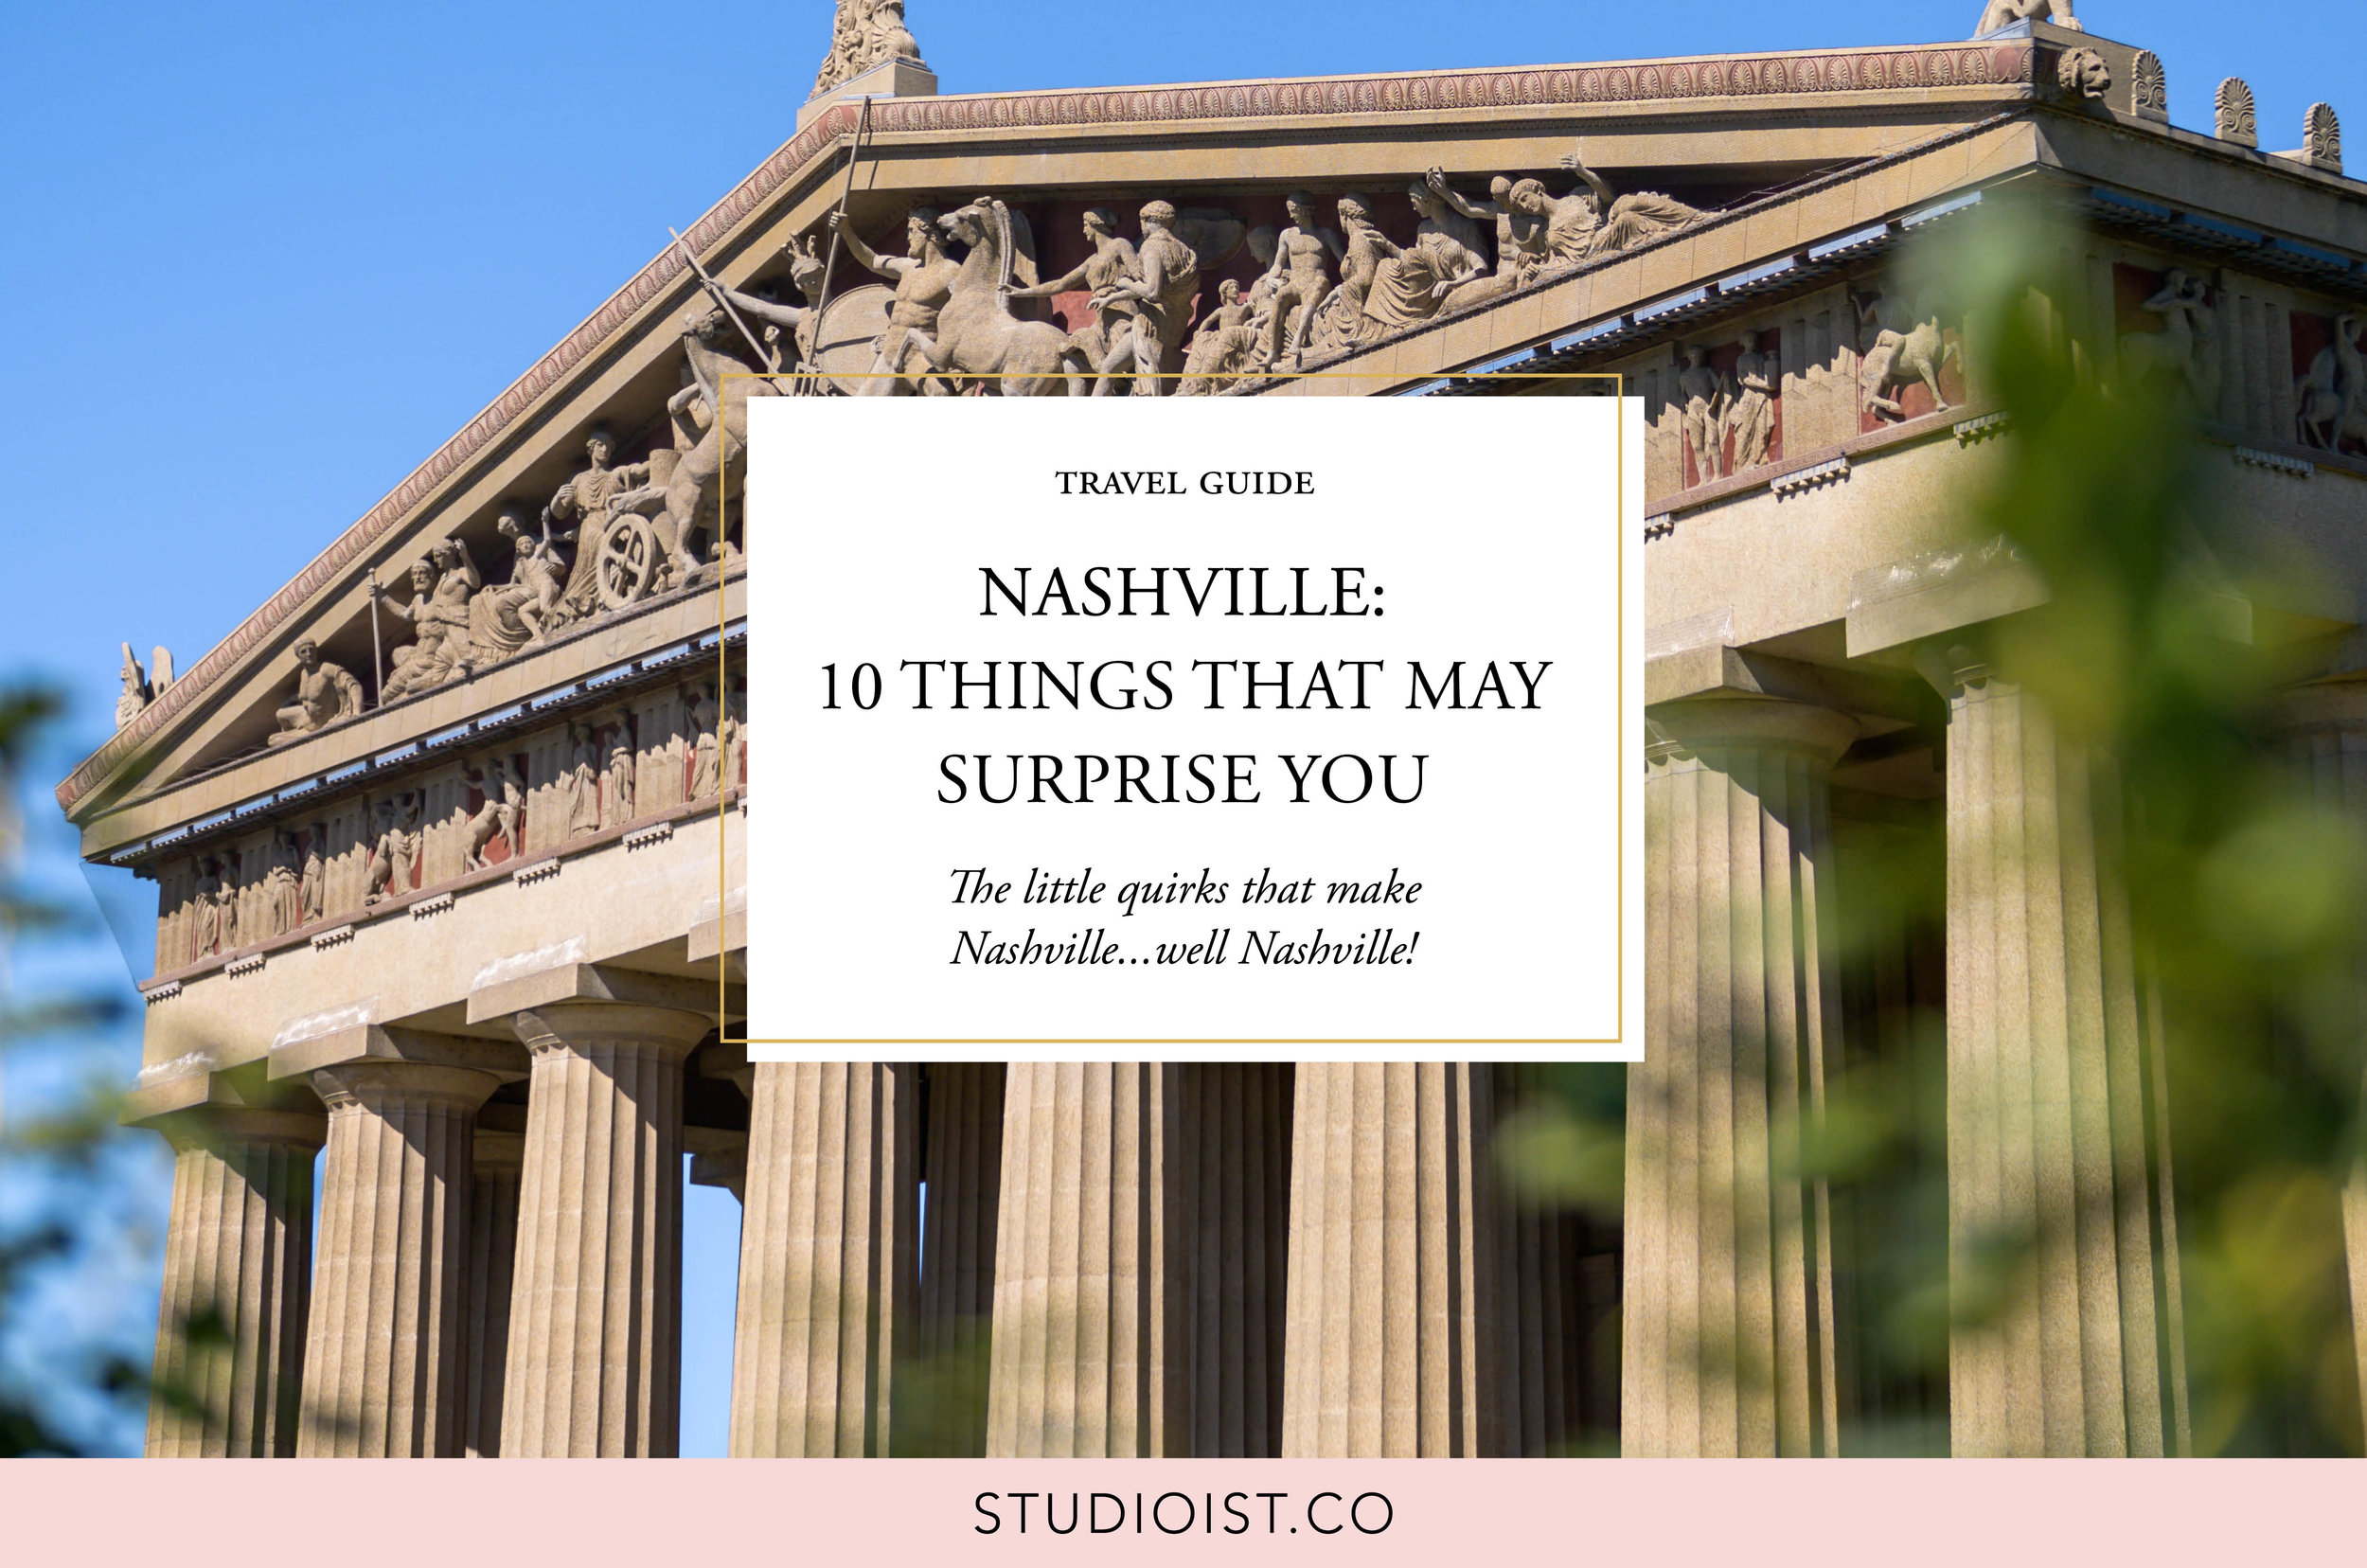 Studioist_Food Cover_Nashville Surprise Tips_small.jpg